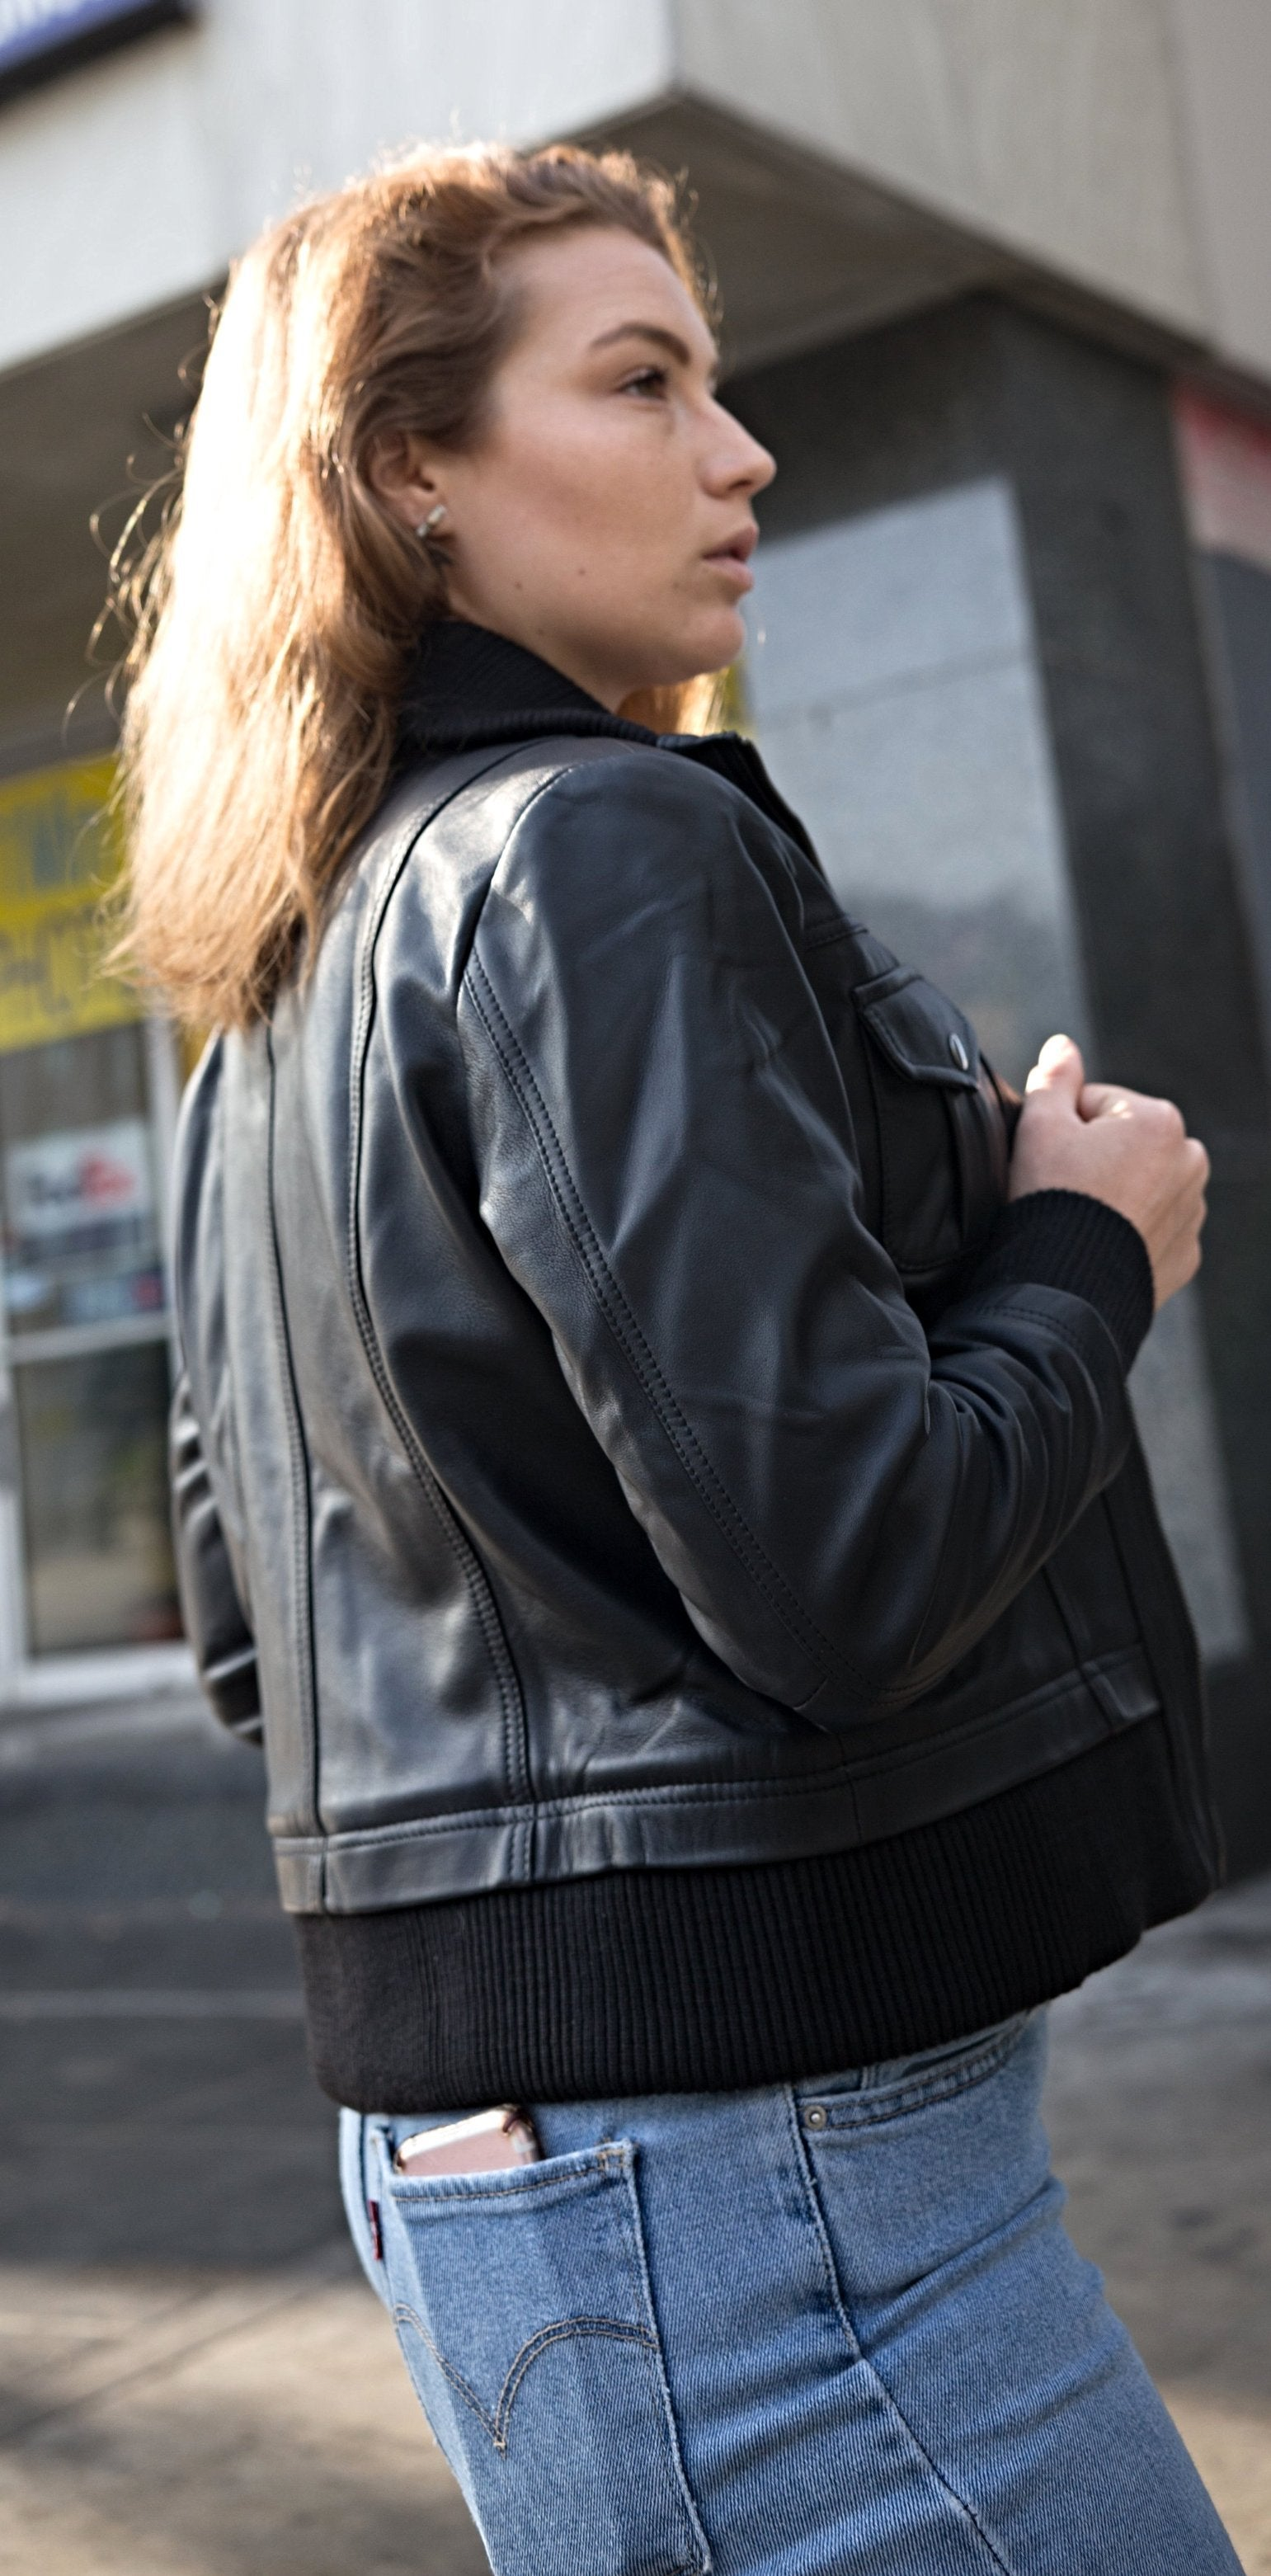 Womens Leather Jacket - Bailey Womens Leather Bomber Jacket - Discounted